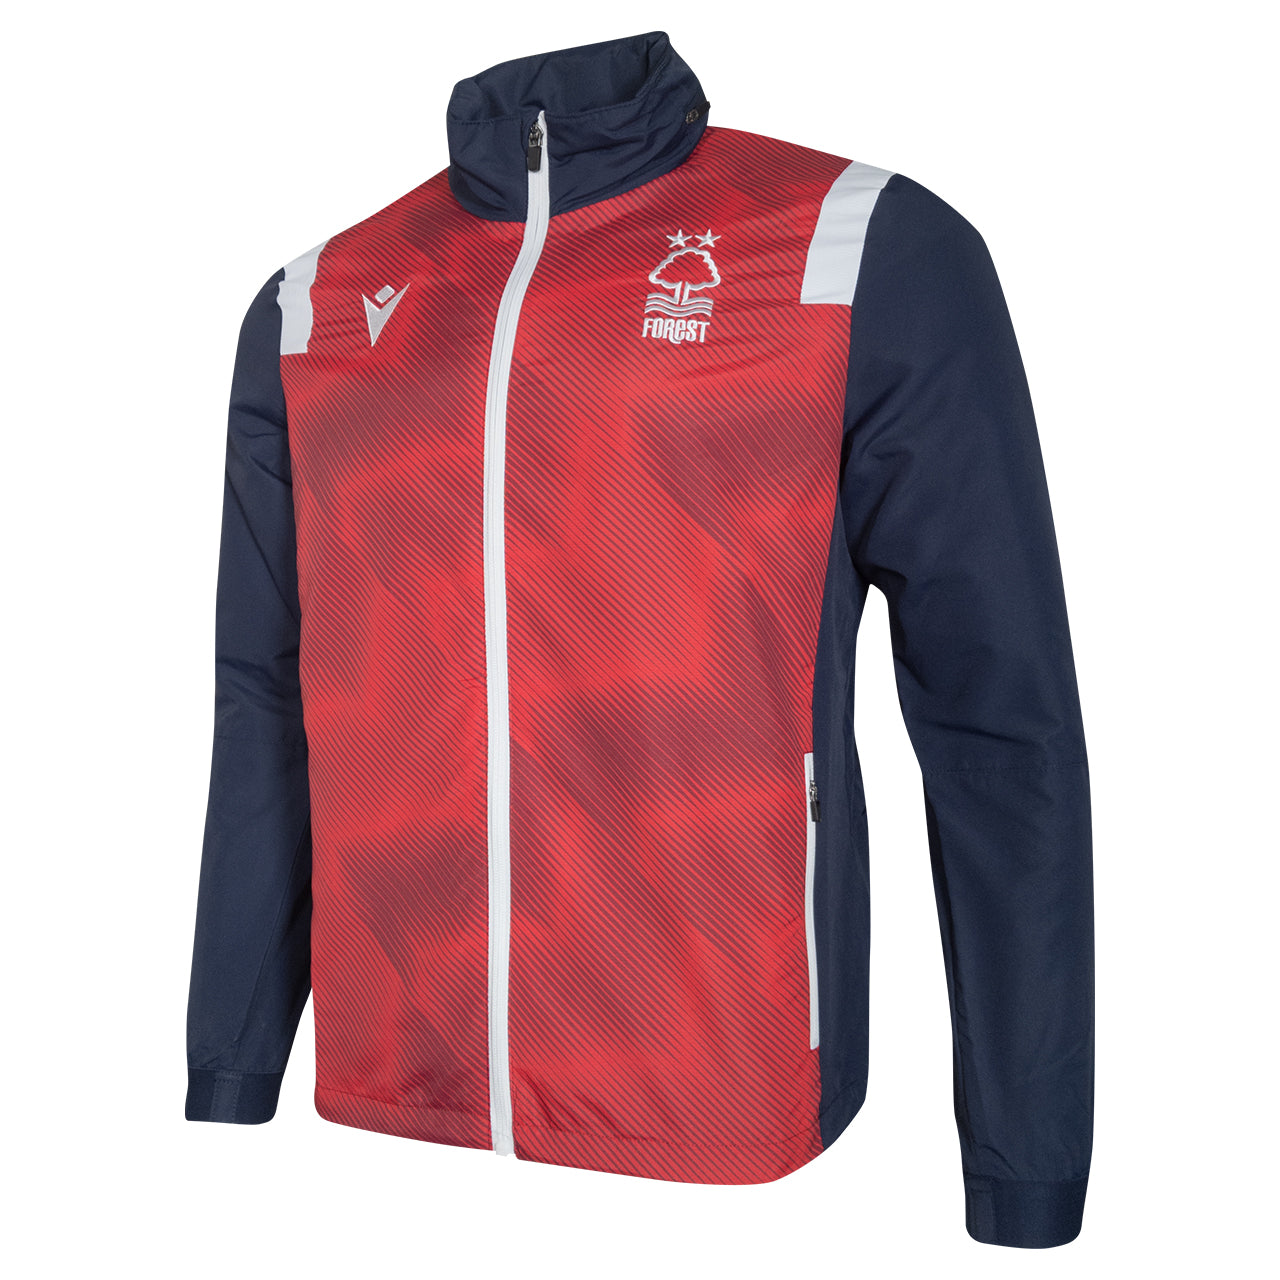 NFFC Junior Player Training Shower Jacket 2020/21